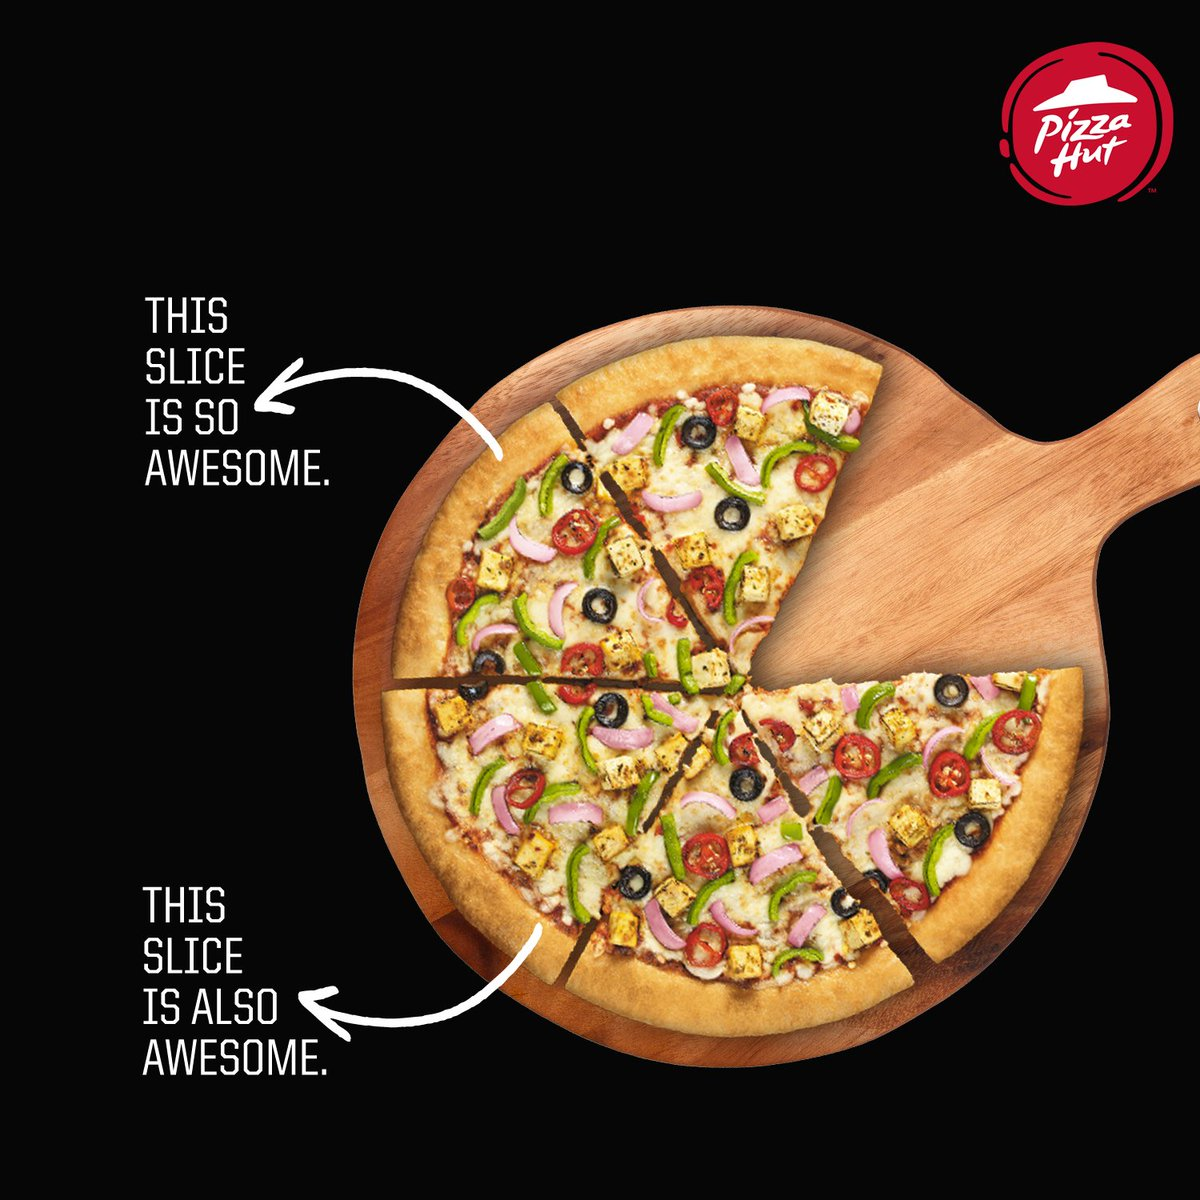 Why be picky Every slice is bursting with awesomeness ThinkPizzaThinkPizzaHut https t.co 04Oqk2NGsn